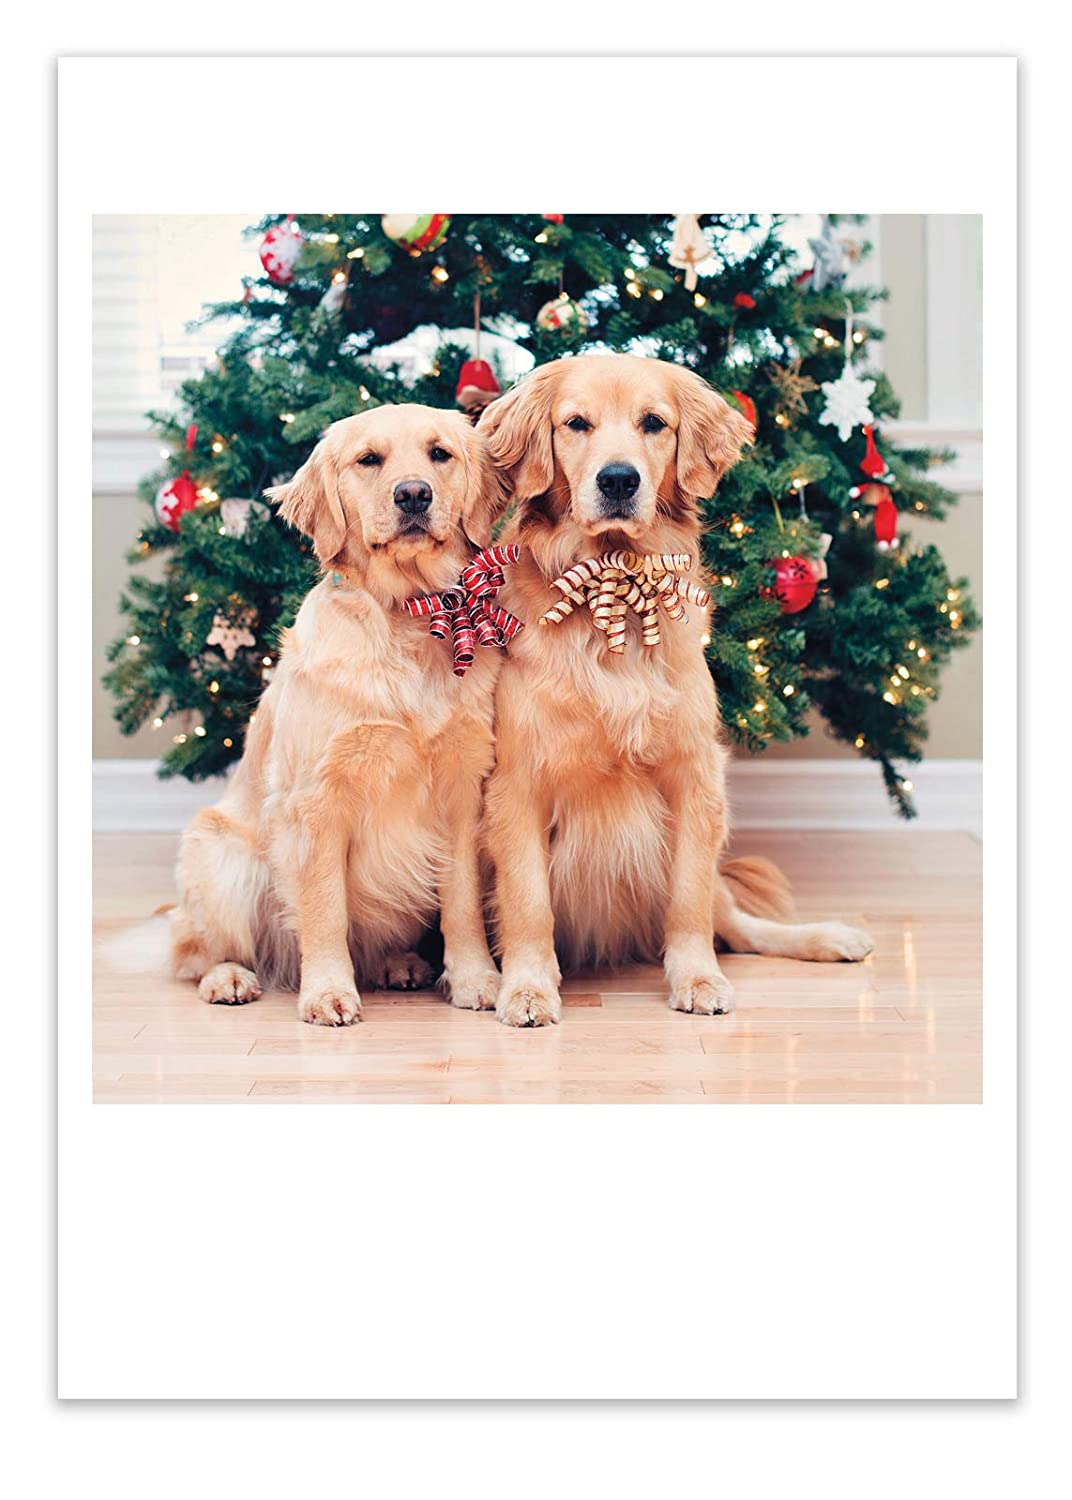 Amazon.com : 12 \'Two Dogs Xmas Trees\' Christmas Cards with Envelopes ...